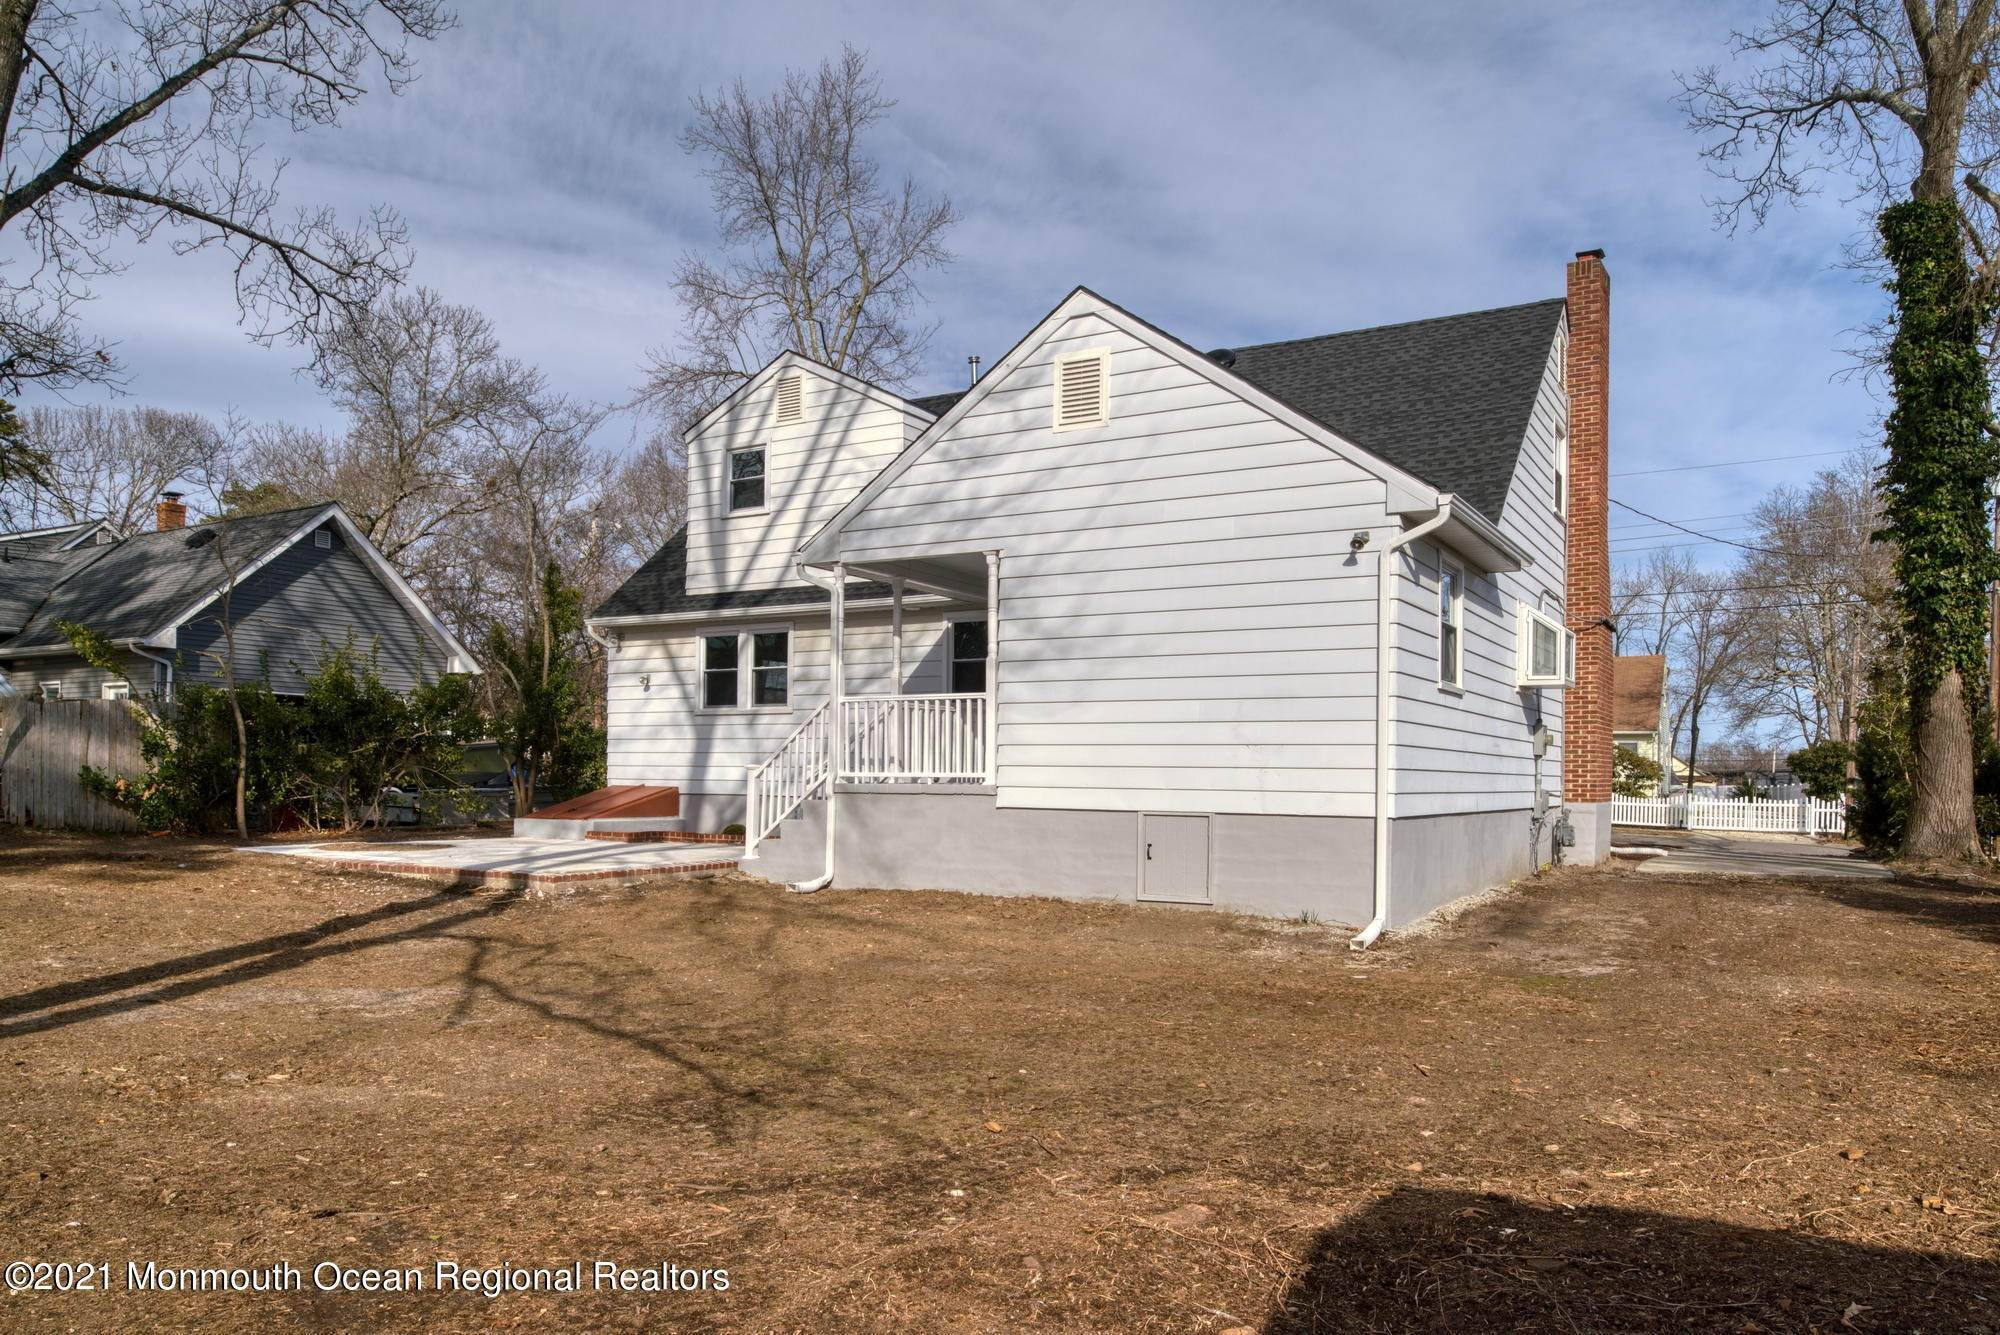 44. Single Family Homes for Sale at 41 Cornell Drive Manahawkin, New Jersey 08050 United States